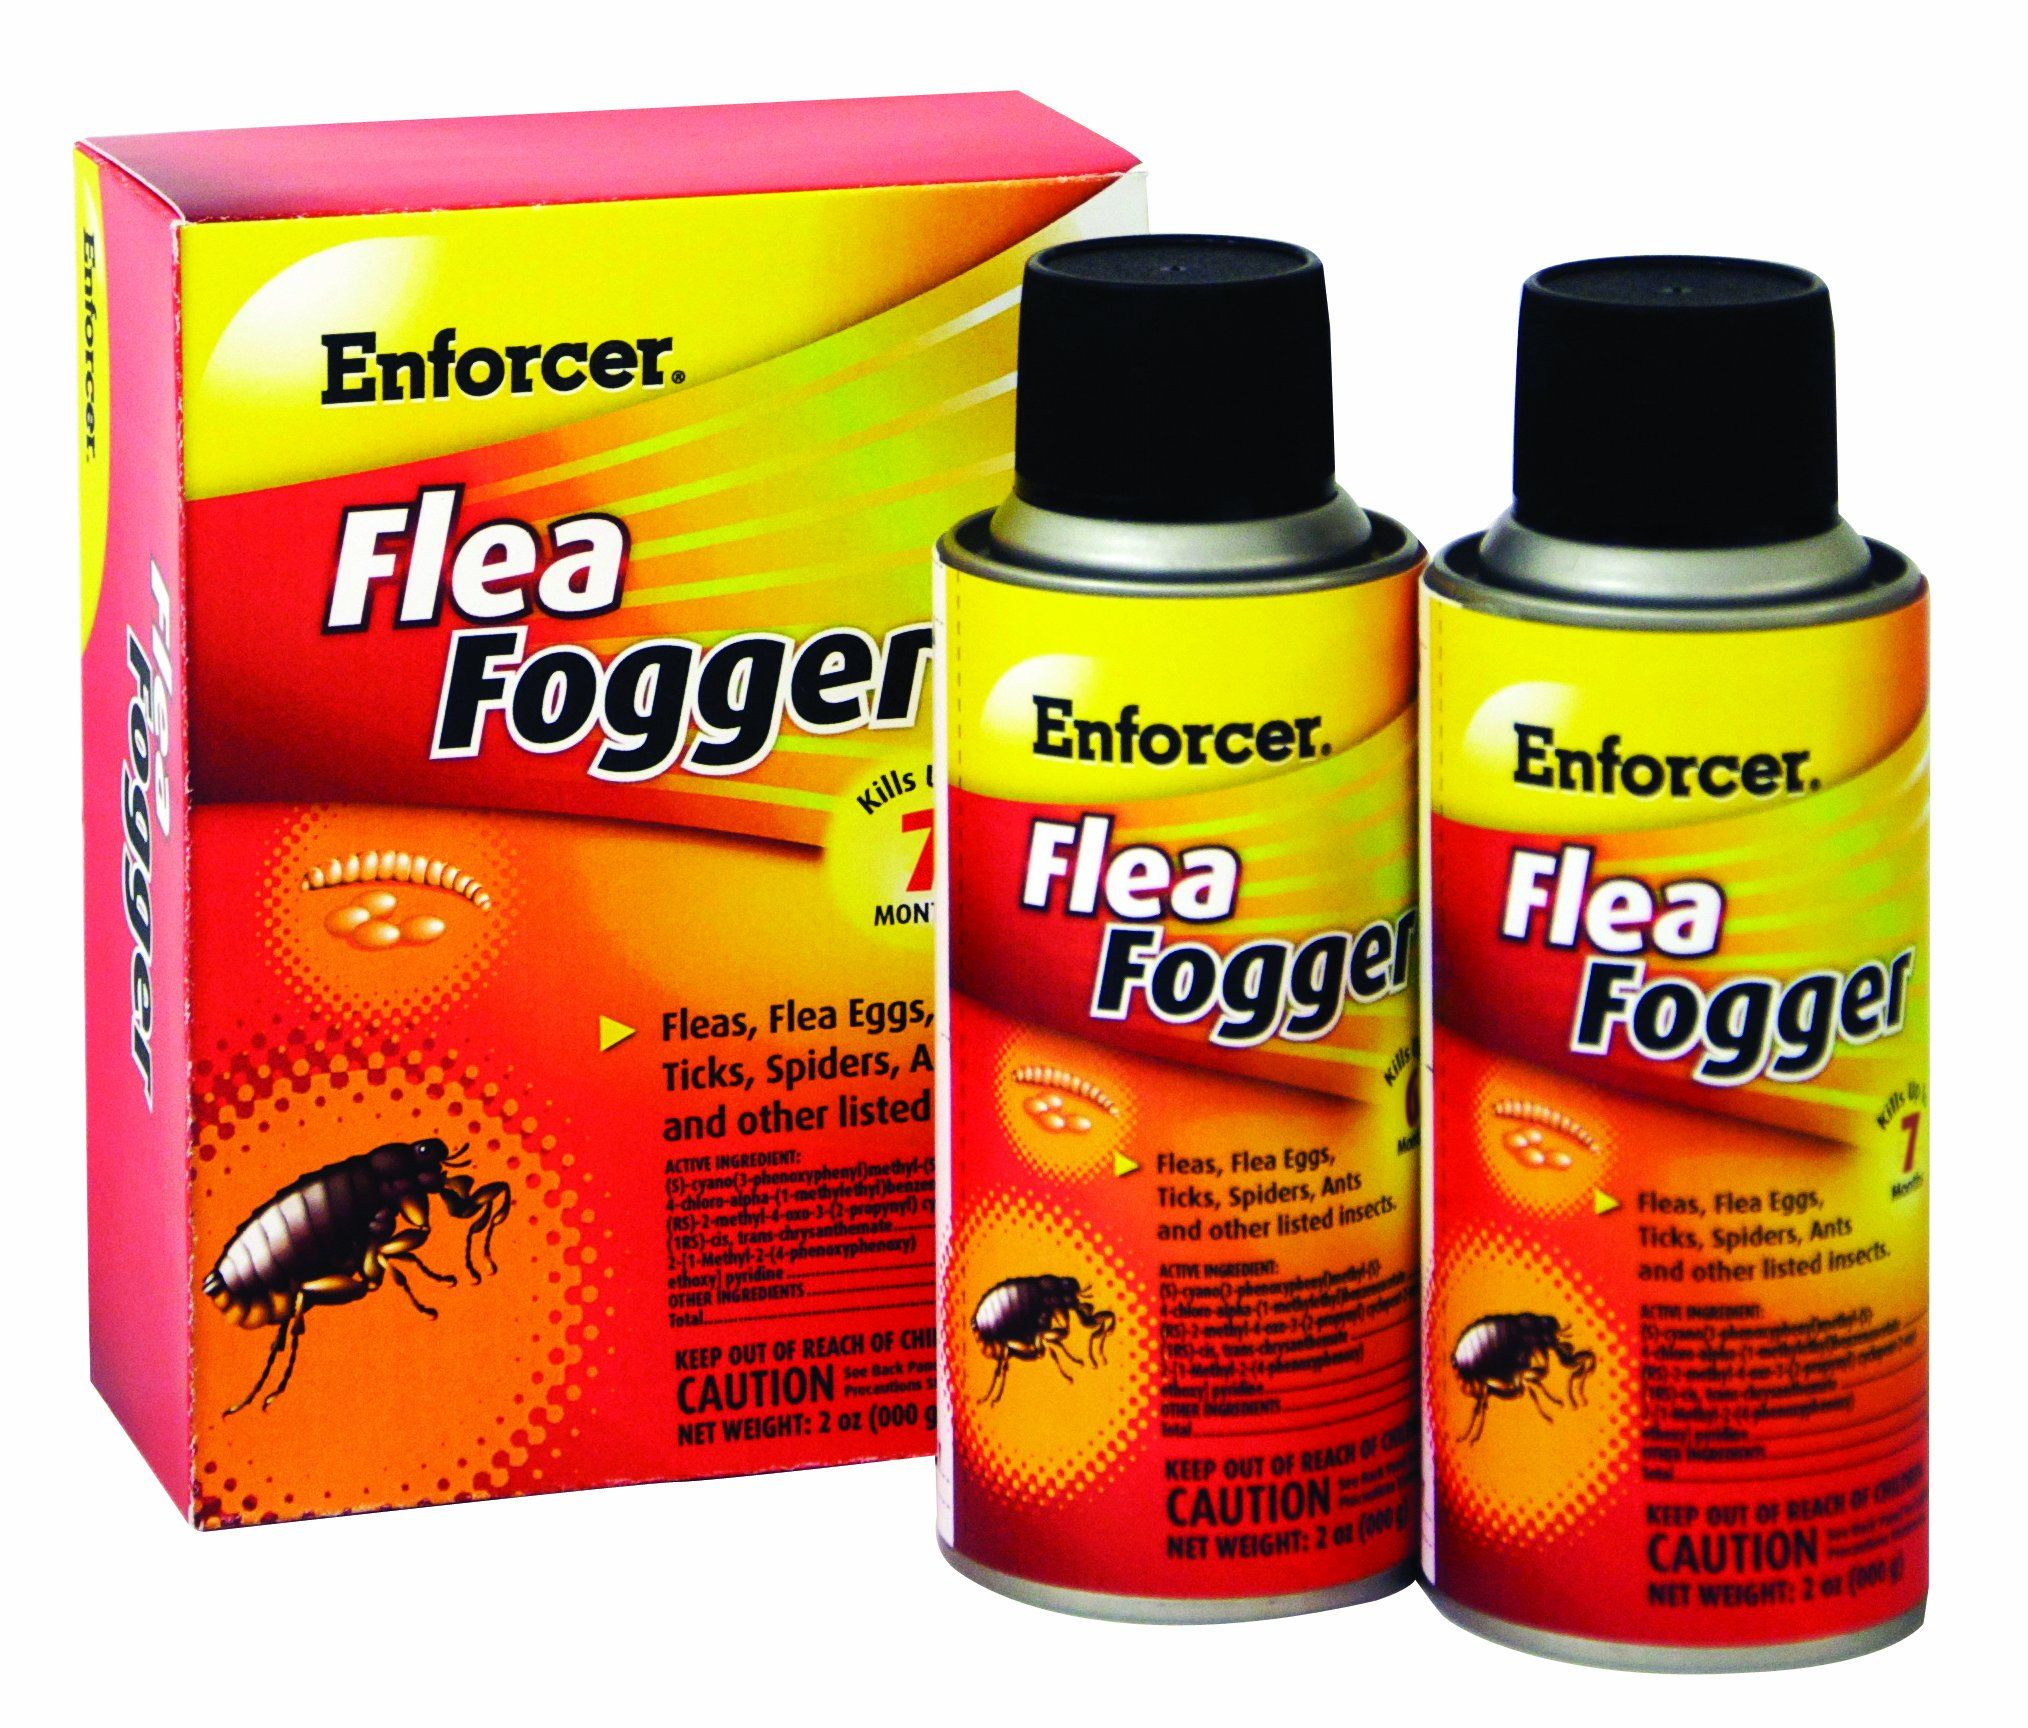 Enforcer 2Pack Flea Fogger *** Click image to review more